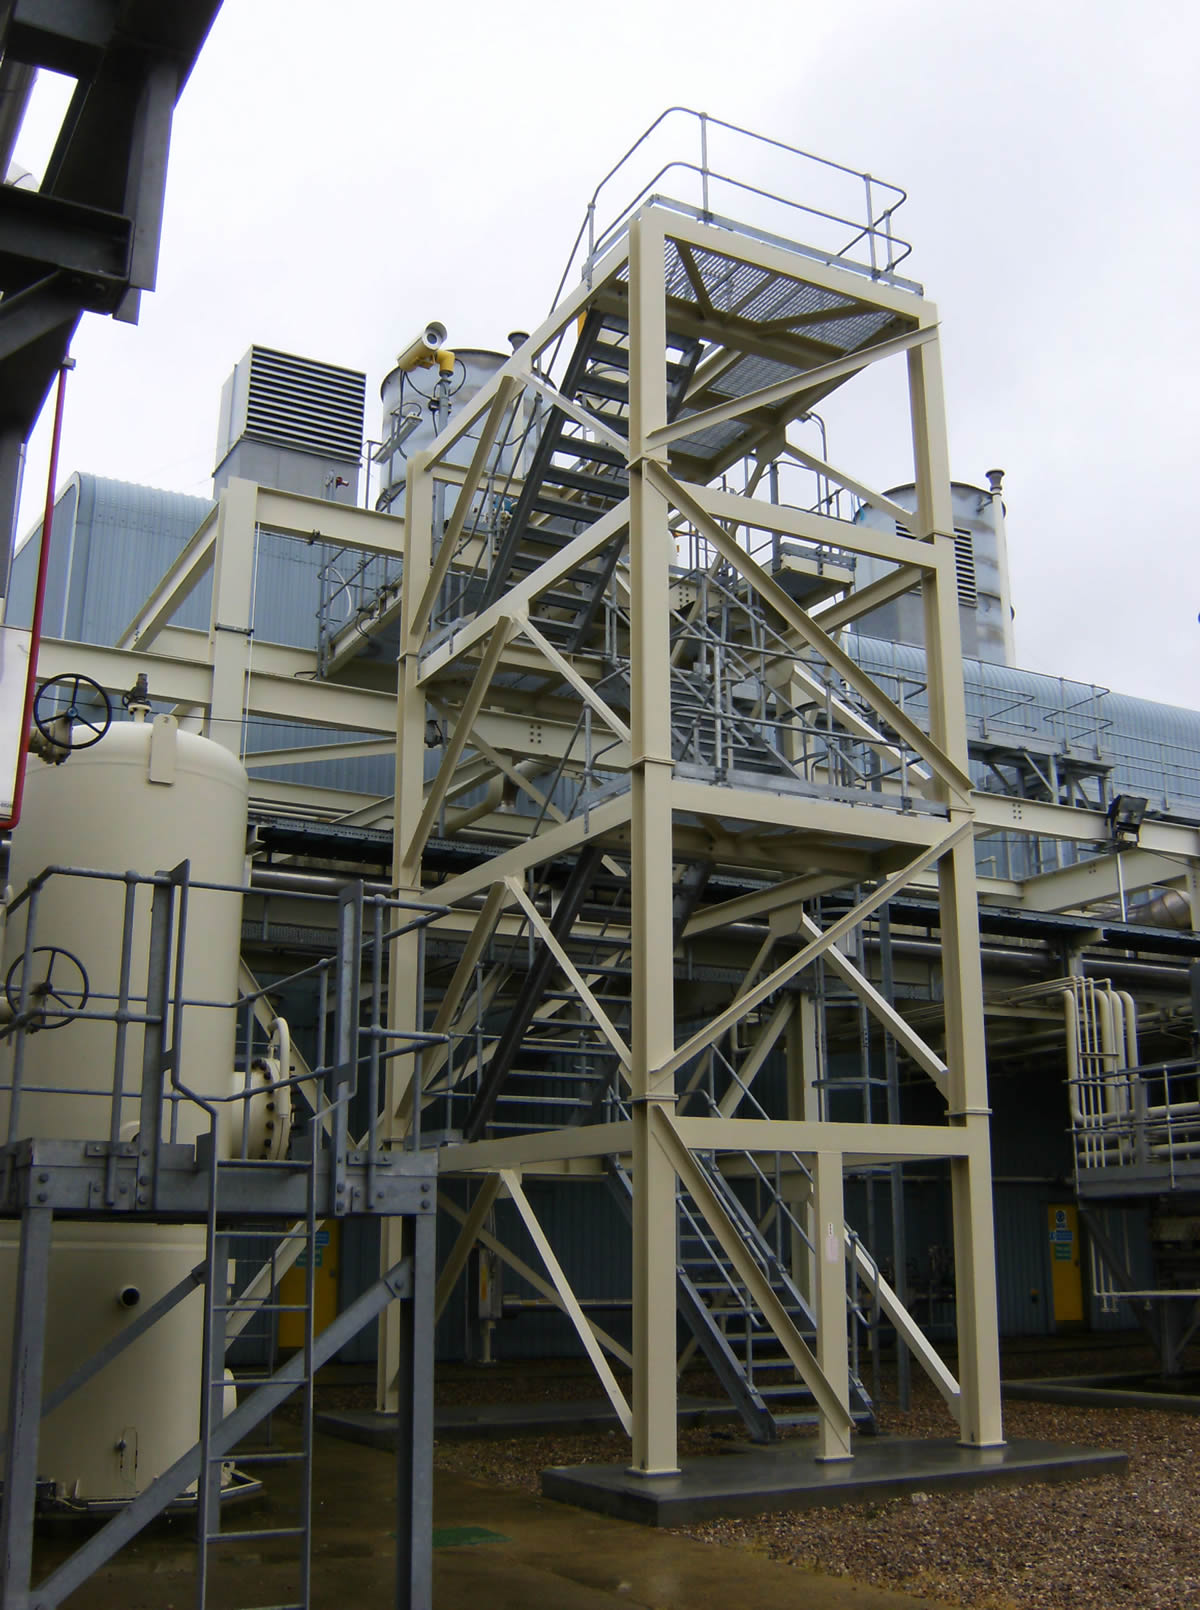 high level walkways stair tower training course great